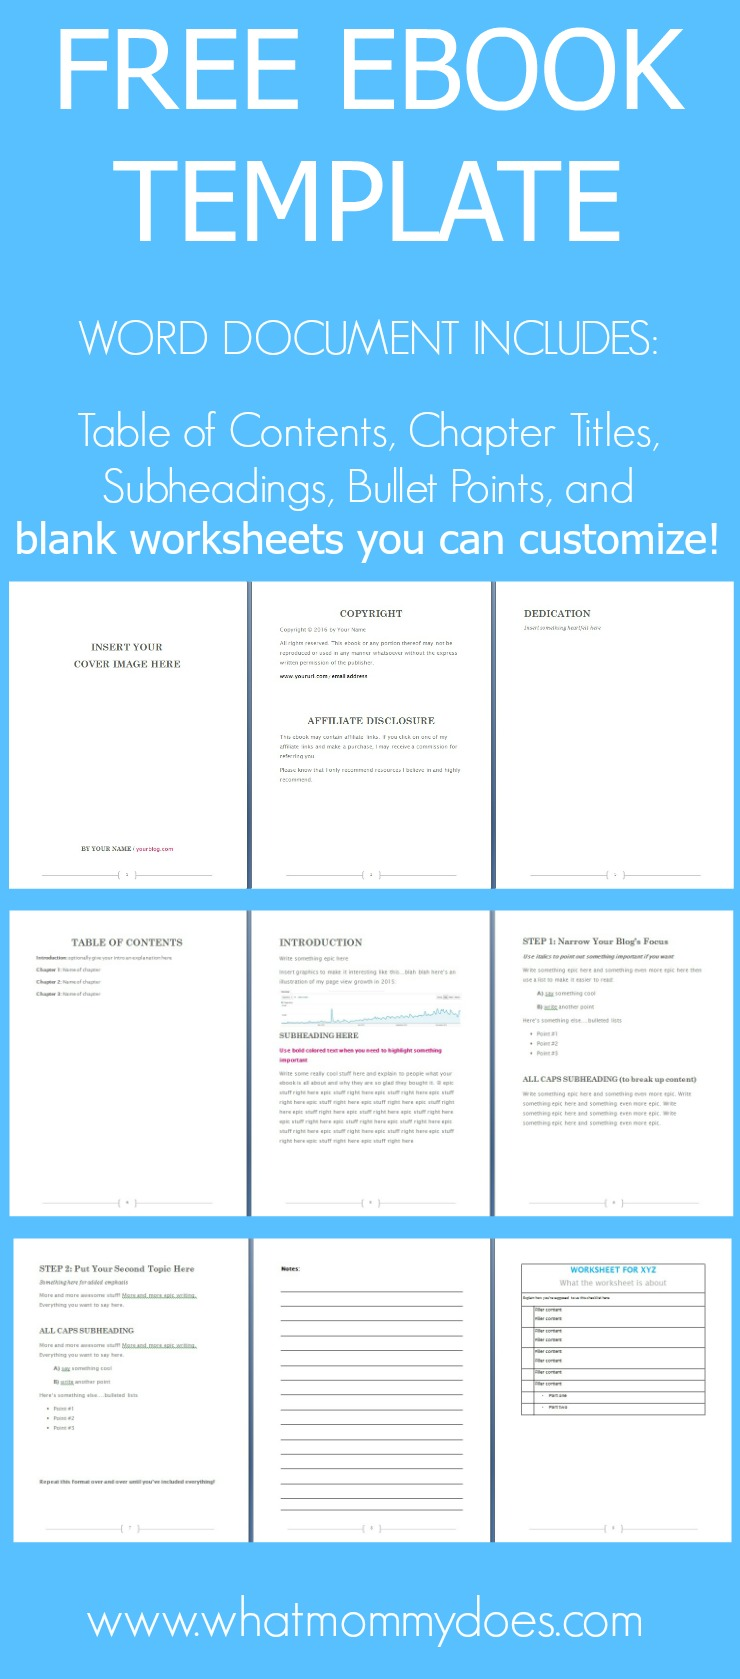 free ebook template - preformatted word document